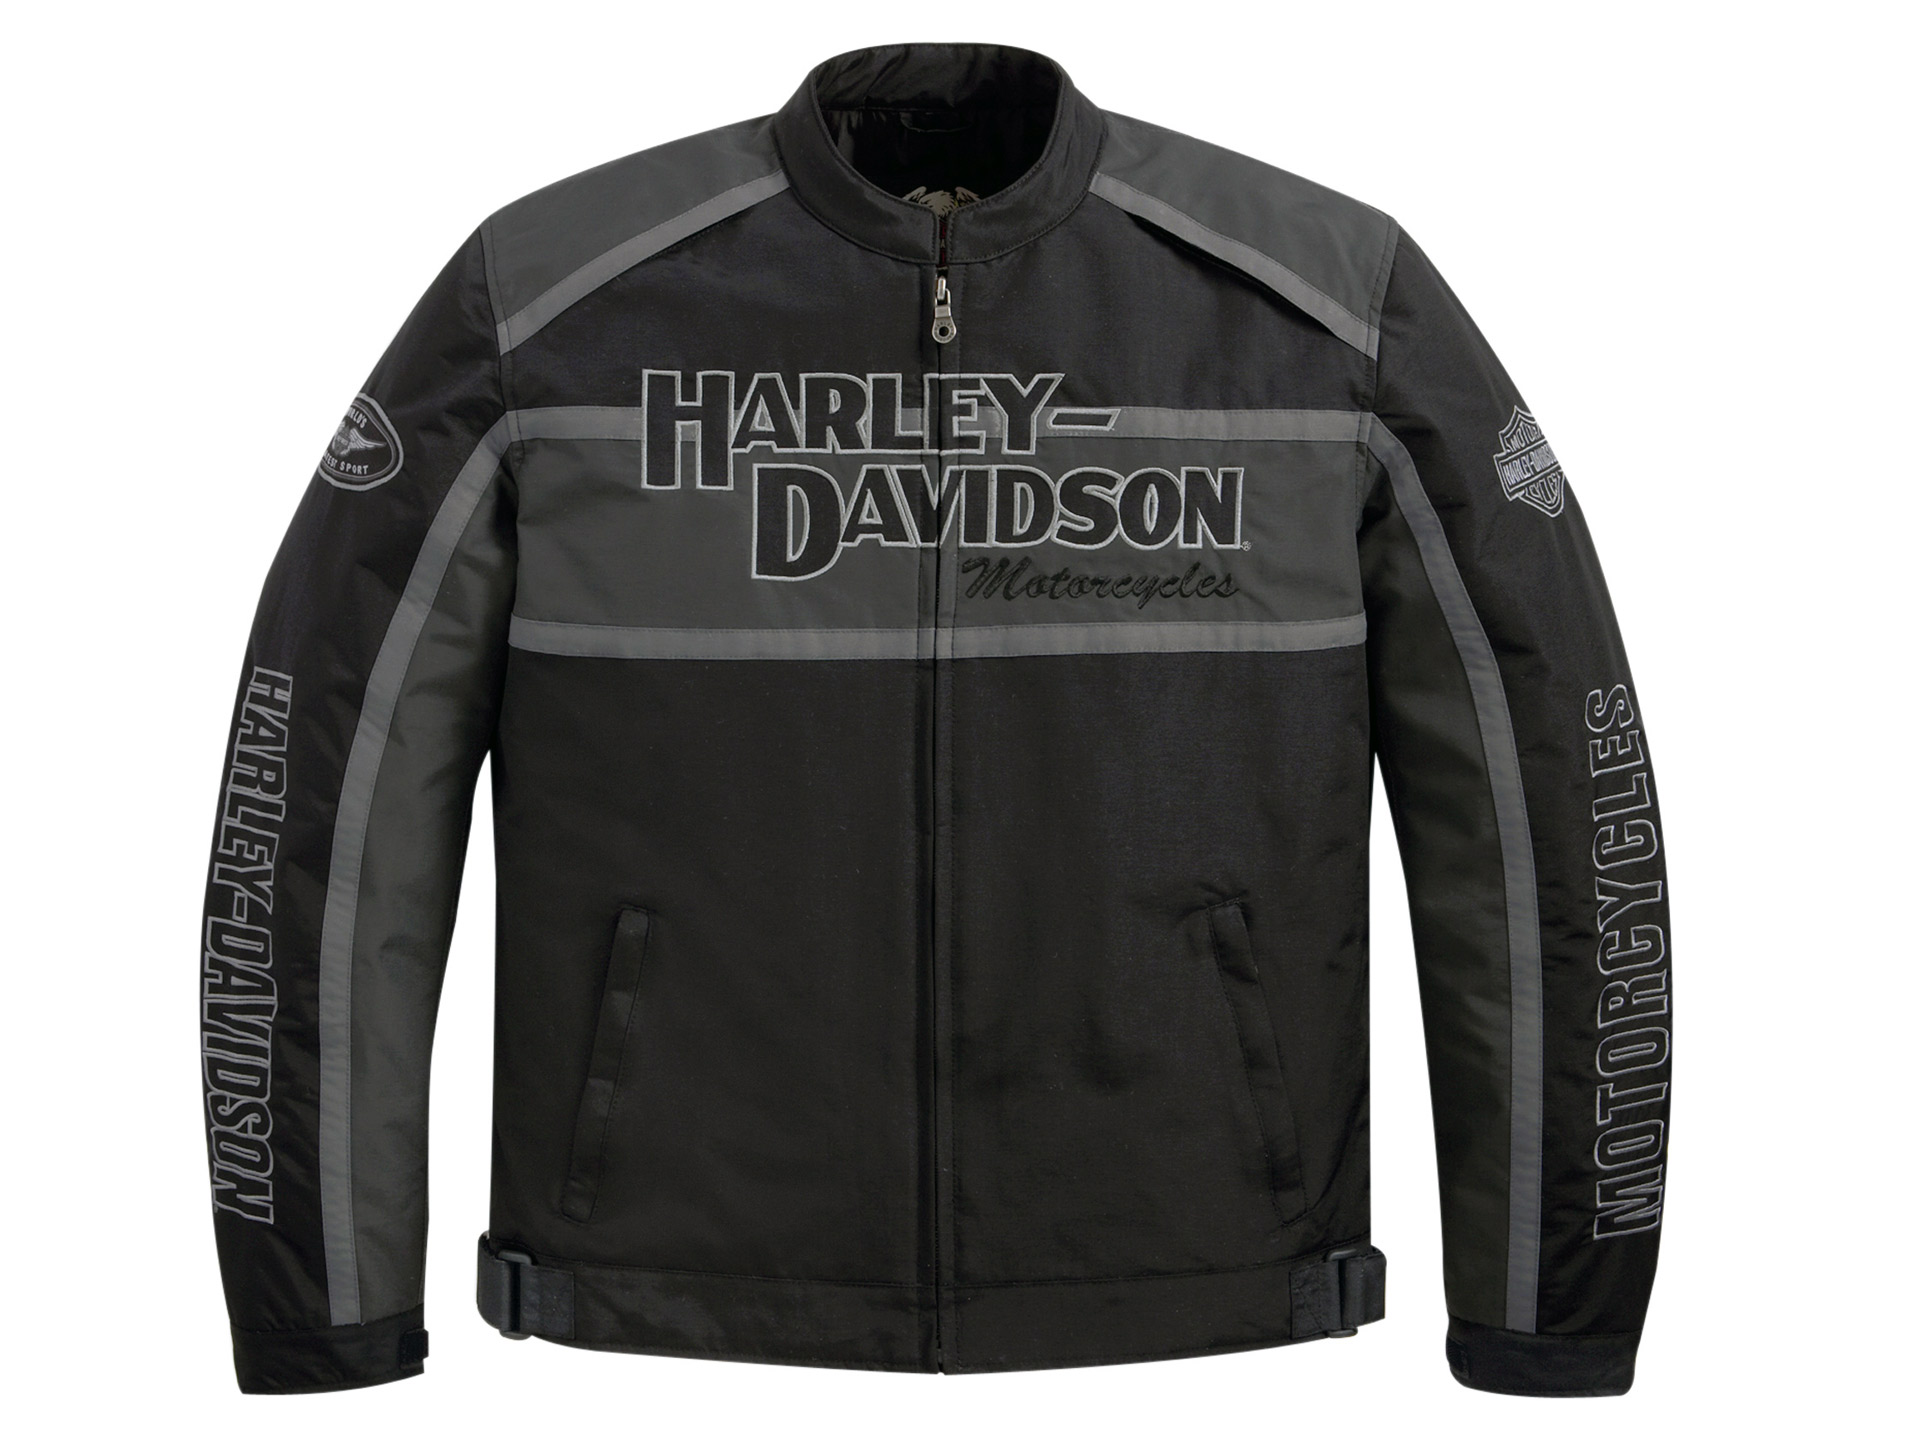 98357 11vm harley davidson motorradjacke classic cruiser. Black Bedroom Furniture Sets. Home Design Ideas